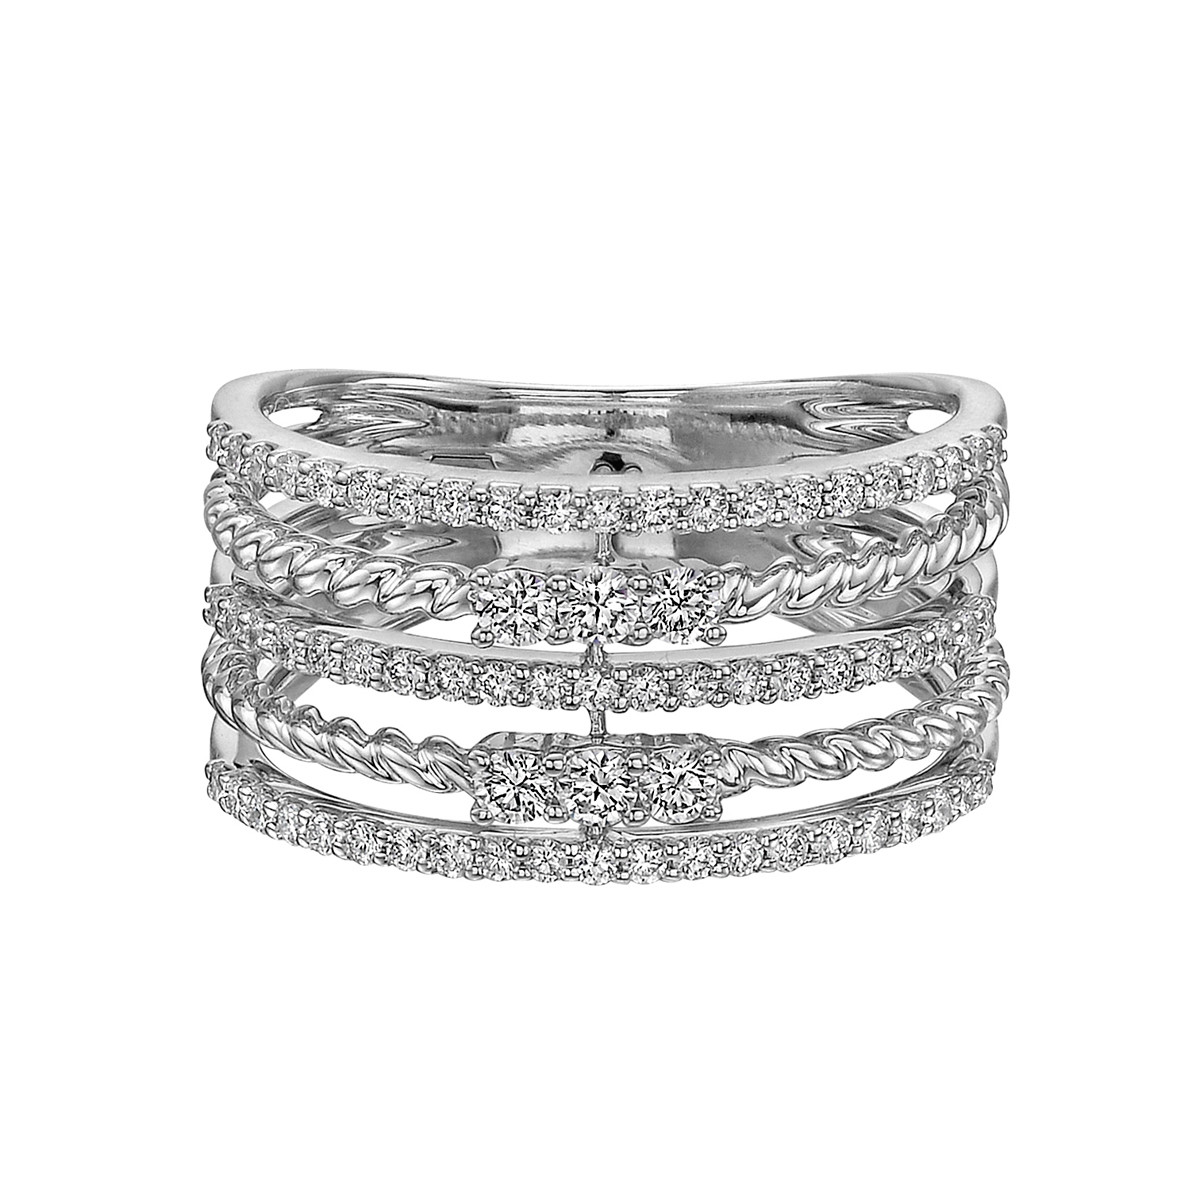 18k White Gold & Diamond 5-Row Ring